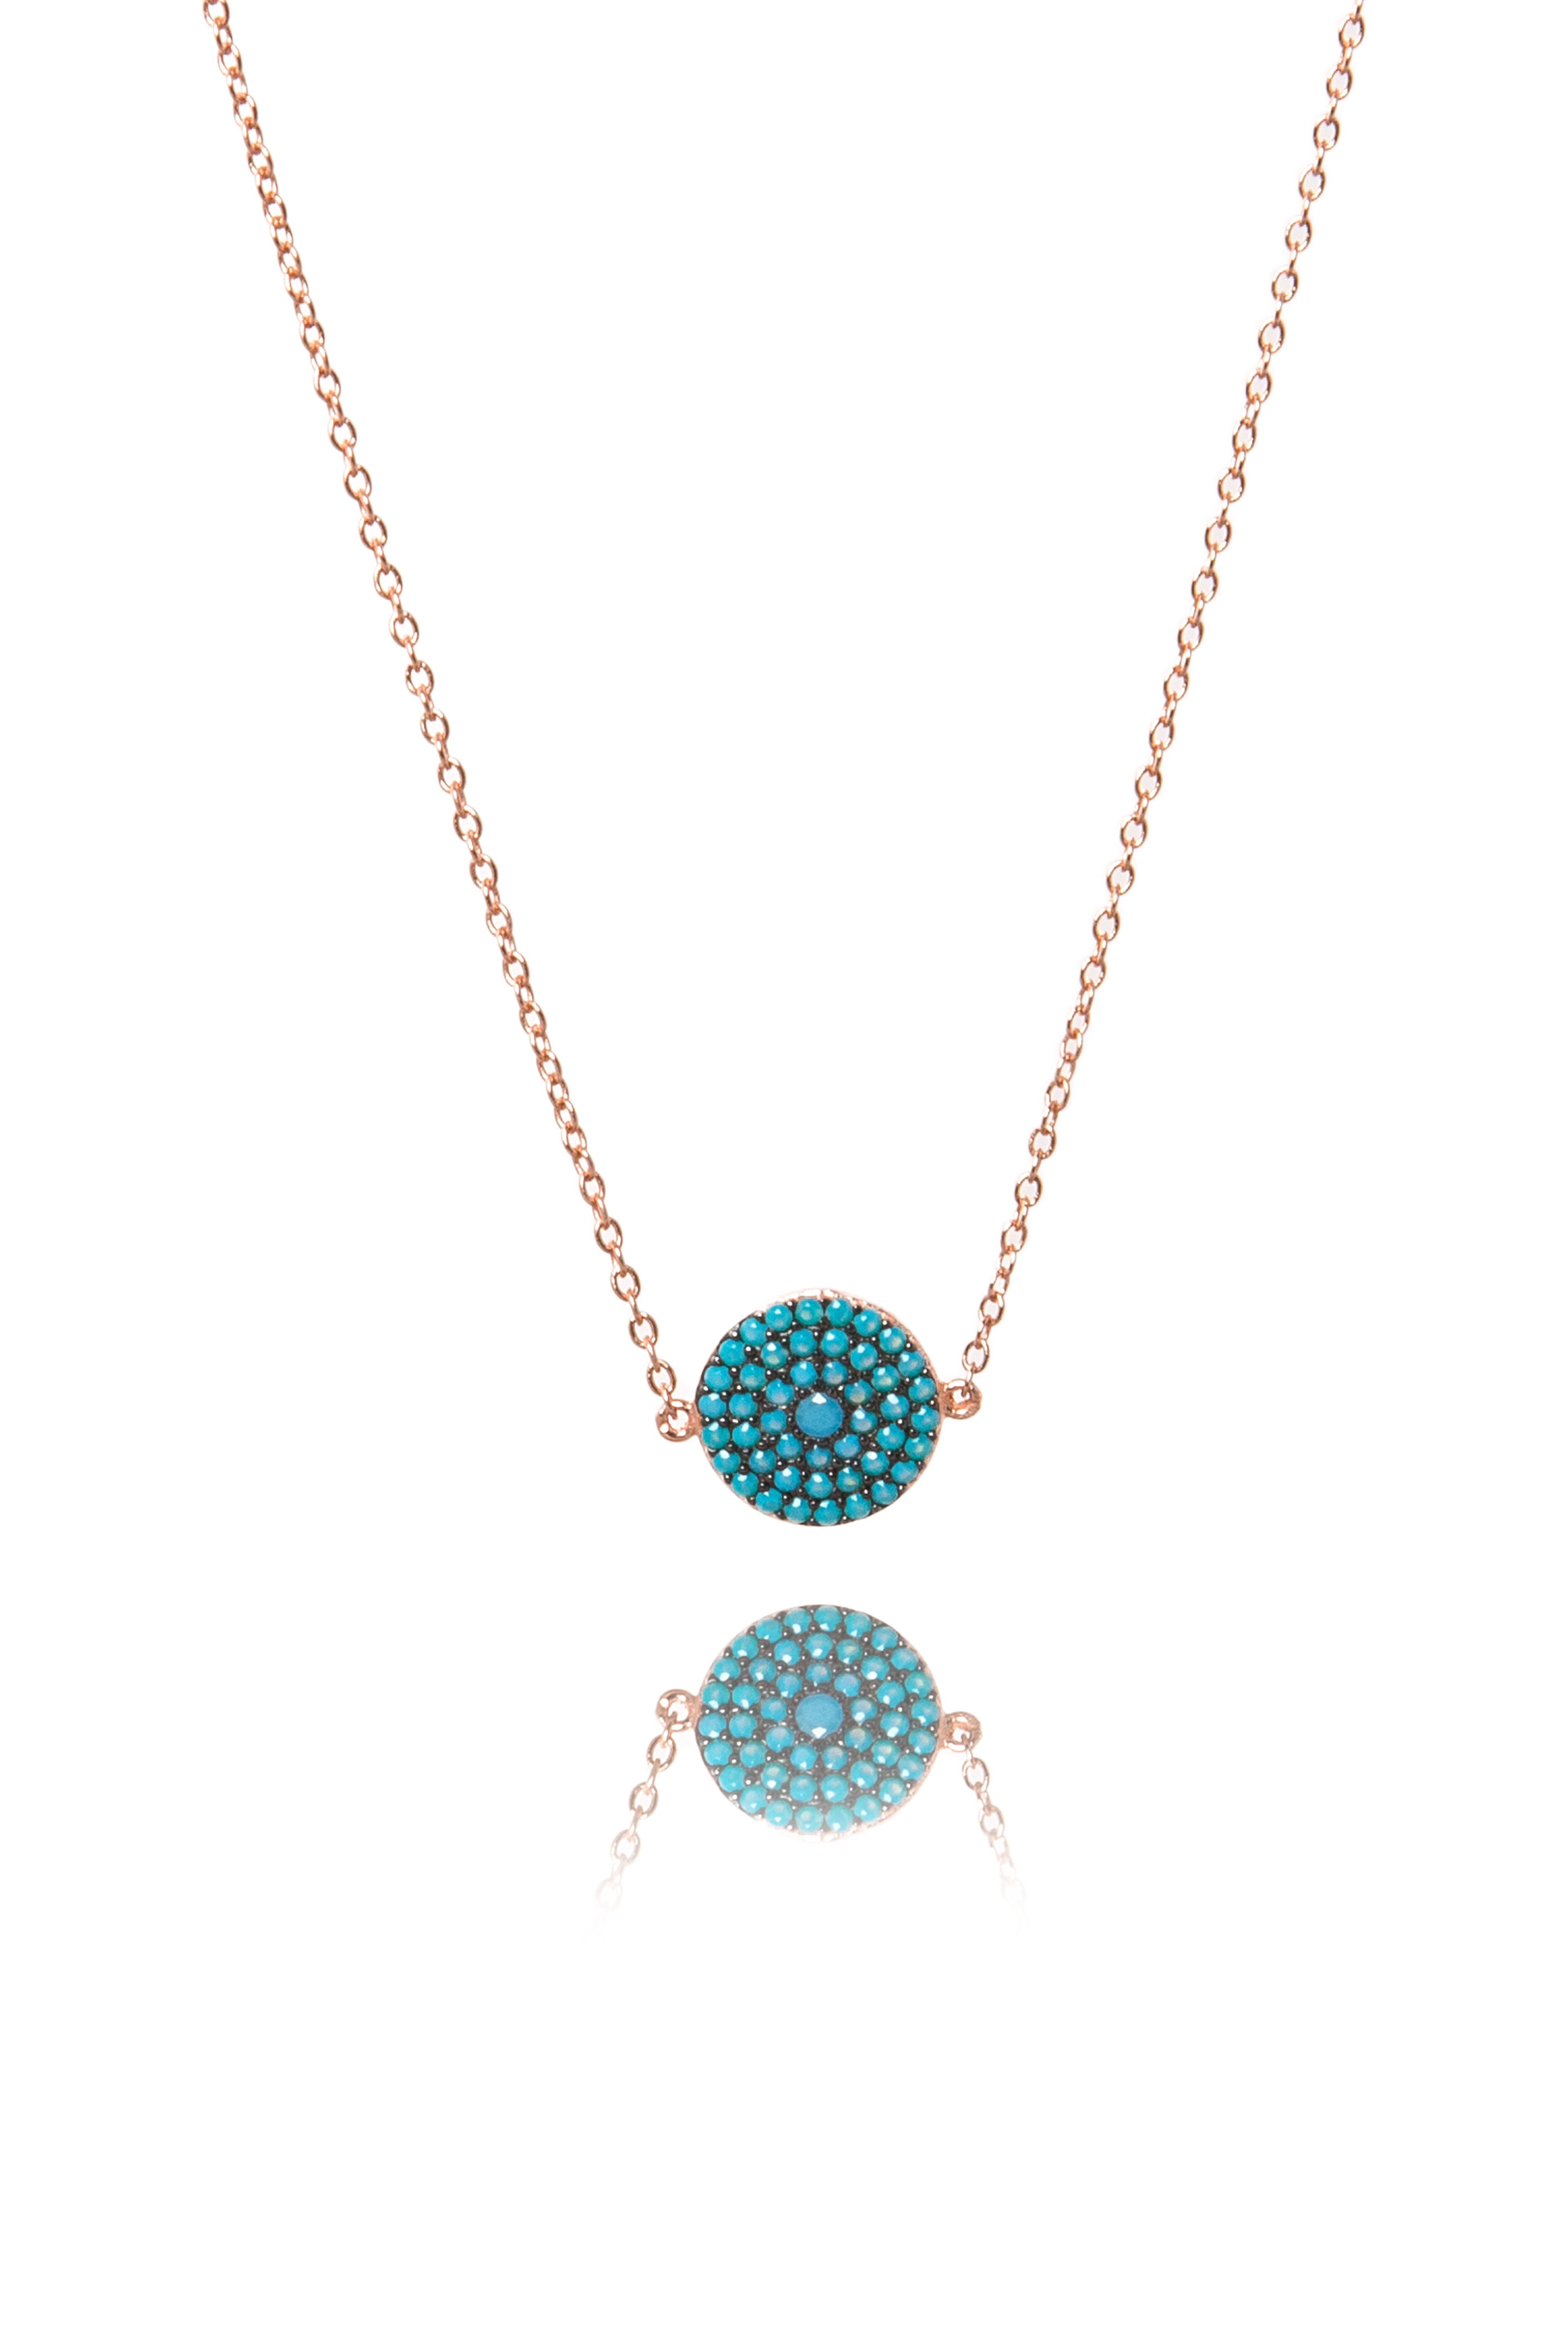 Rose gold and turquoise round pendant necklace the makery collection rose gold and turquoise round pendant necklace aloadofball Image collections